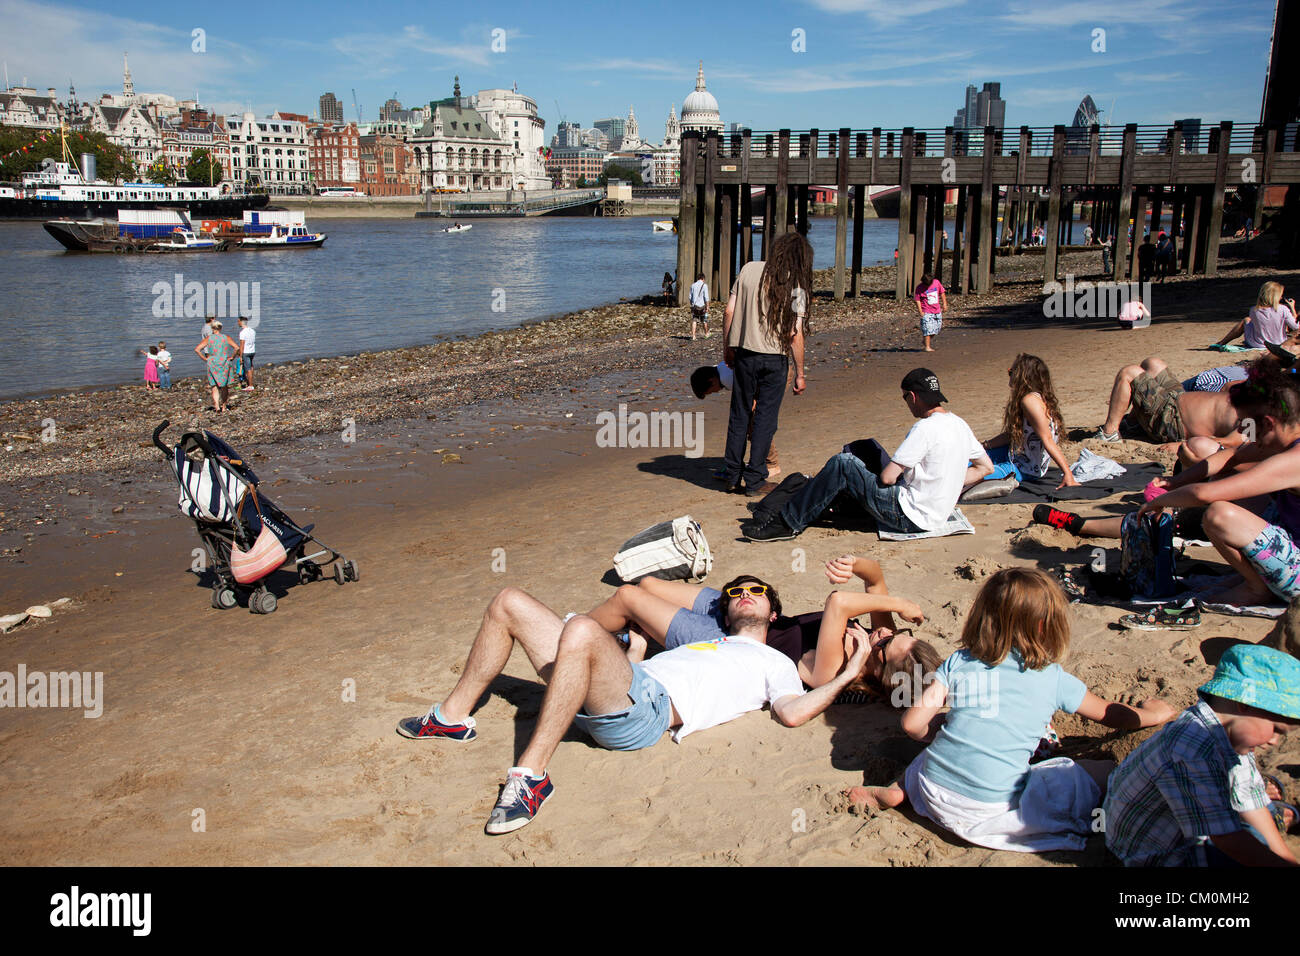 London, UK. 8th September, 2012. People gather on the sand beach shore of the river Thames, like the seaside in - Stock Image